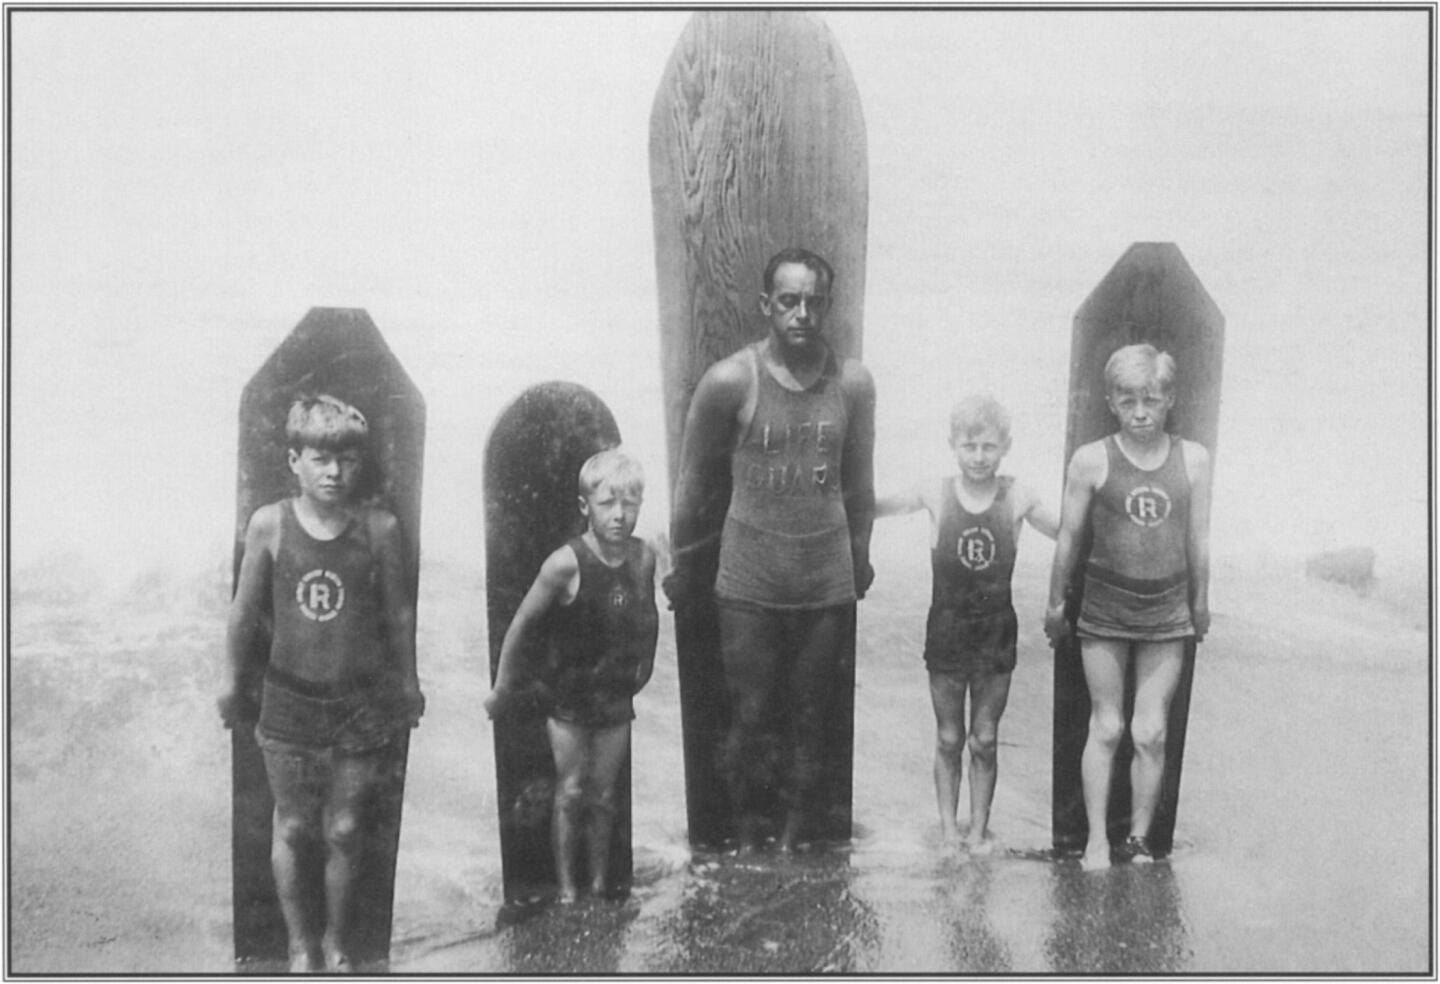 Teaching and coaching youngsters in swimming, surfing, and water safety may have been Freeth's greatest delight. Lined up with their boards in the surf at Redondo Beach, these local boys grew up to become the nuclei of modern ocean lifesaving crews.